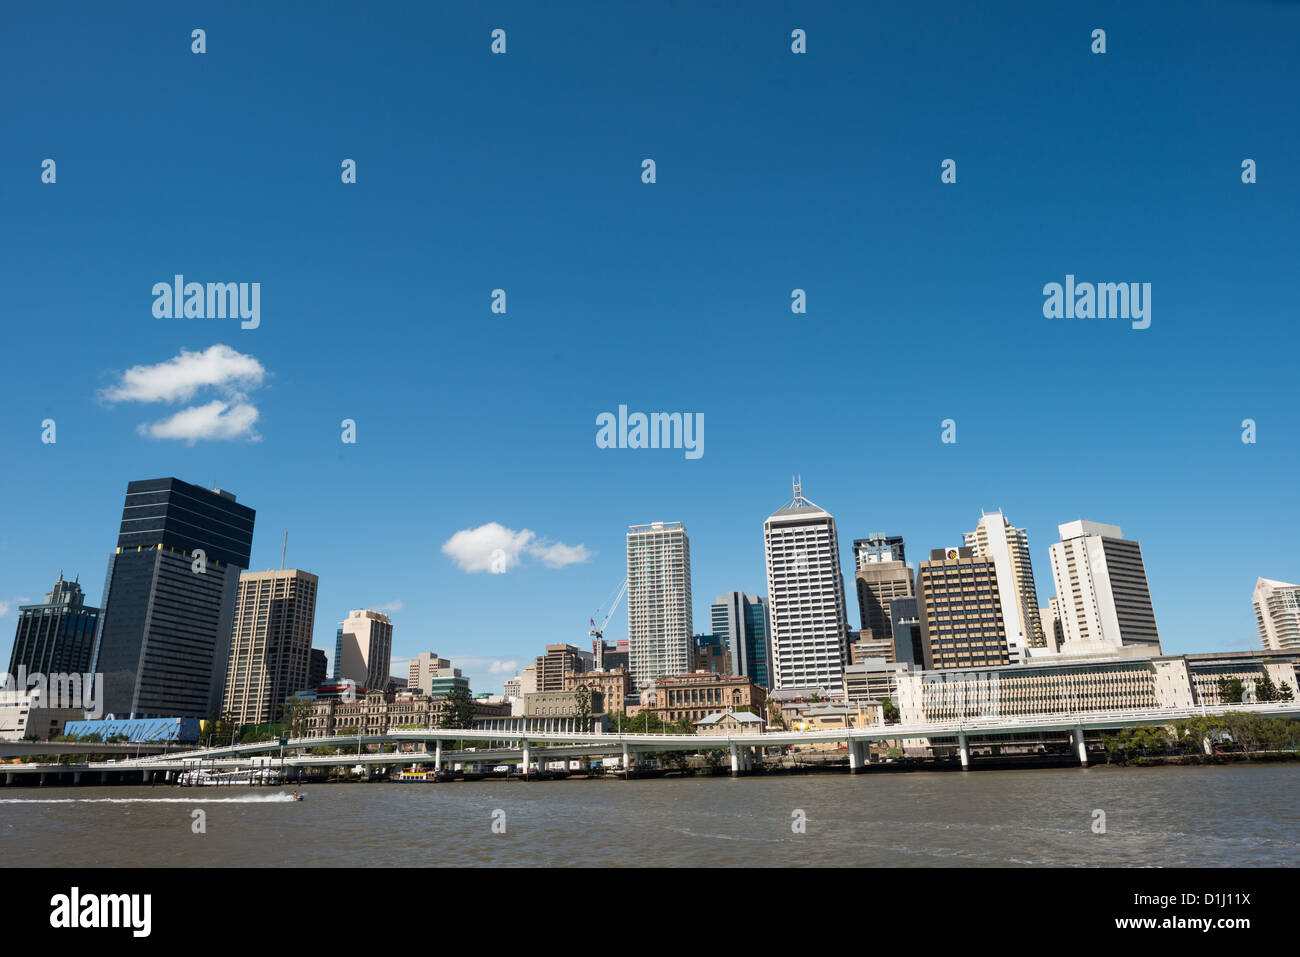 BRISBANE, Australia - Brisbane city skyline from across the Brisbane River at South Bank on a clear sunny summer's - Stock Image